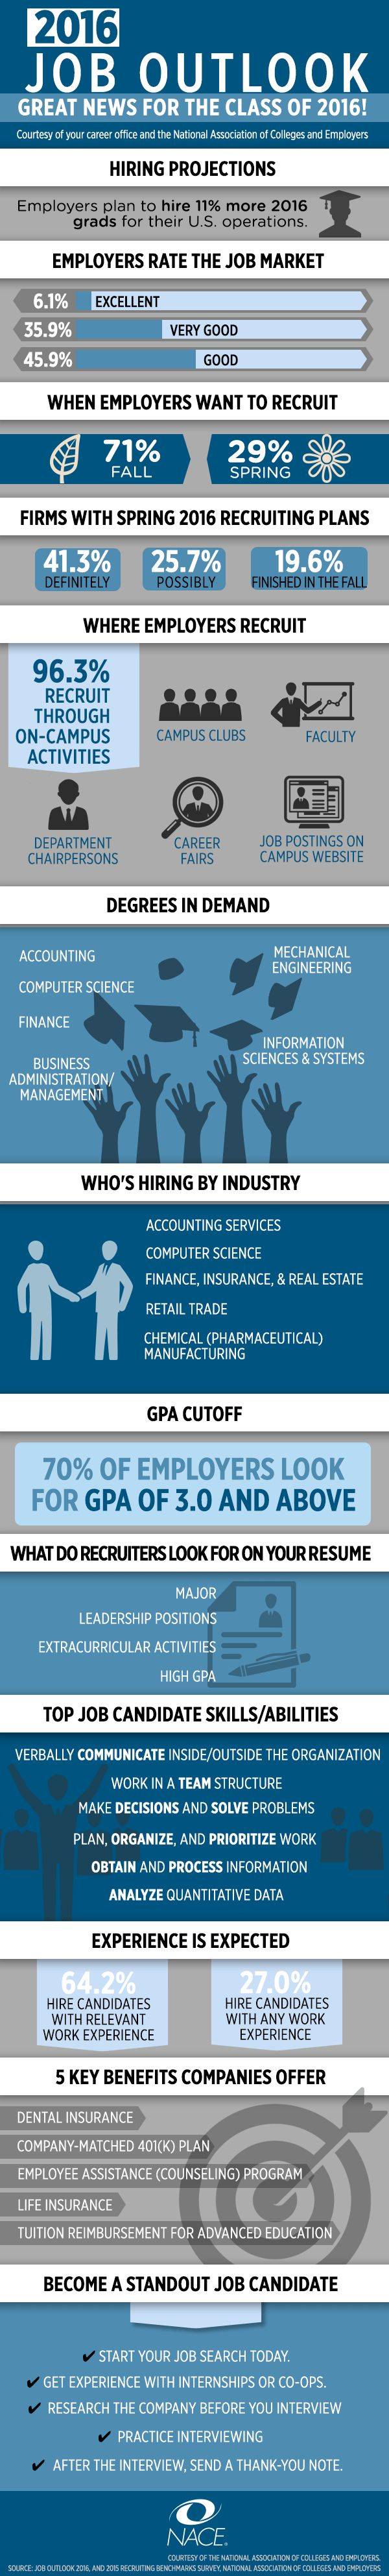 Beautiful 2016 Job Outlook: Great News For College Grads [Infographic] What Does The Job  Market Have In Store For The Class Of According To The 2016 Job Outlook By  ...